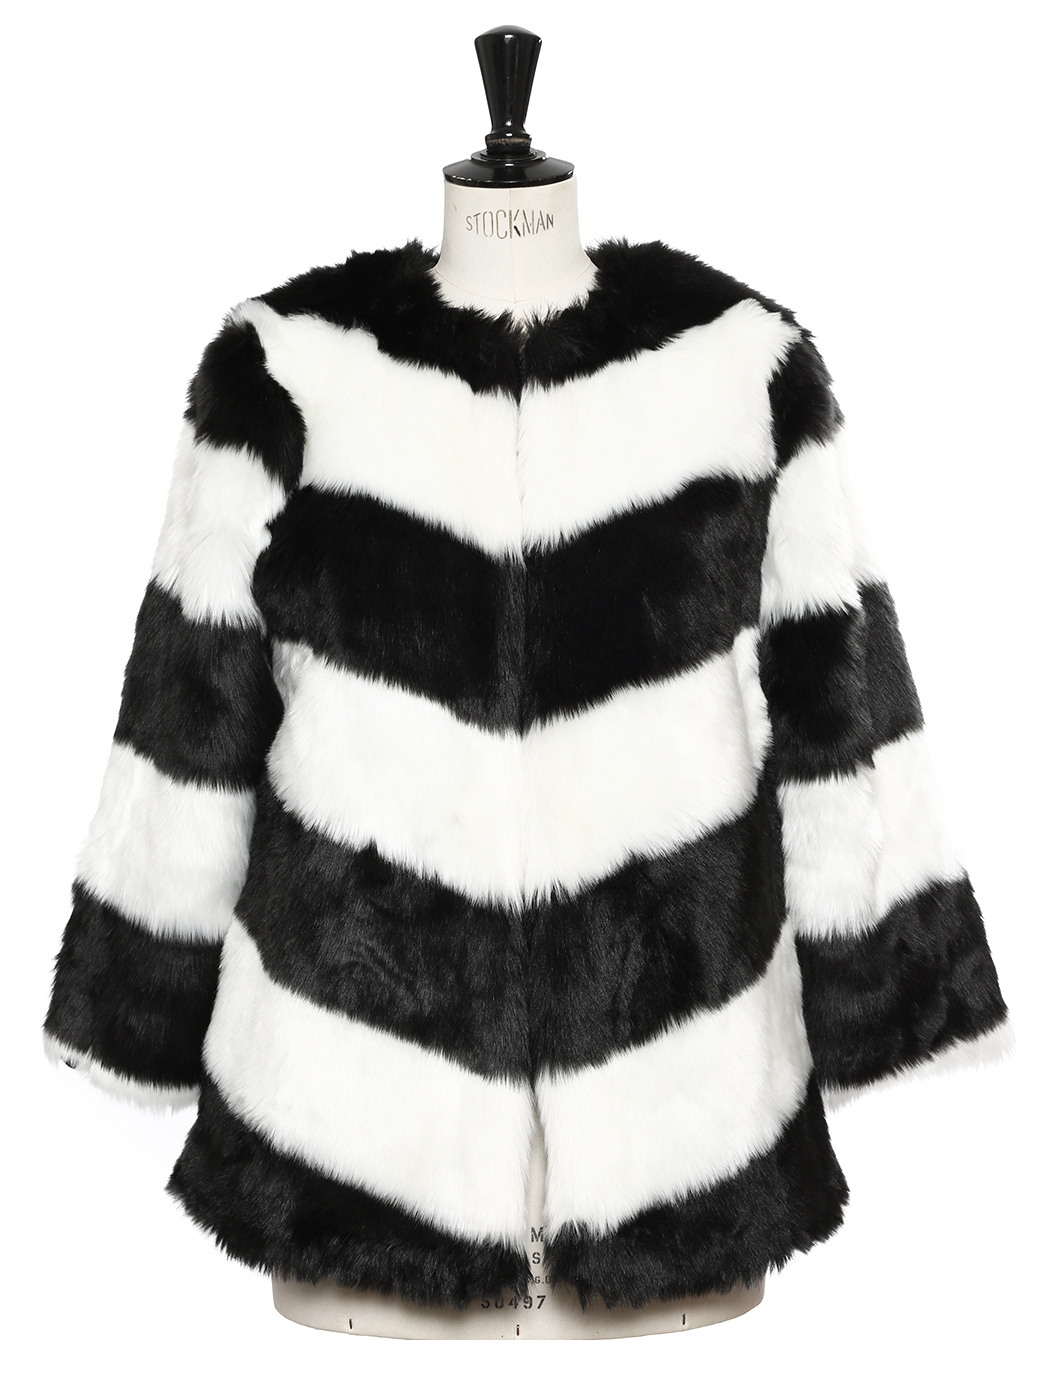 e546e0f97e Louise Paris - GESTUZ Black and white striped faux fur coat NEW ...